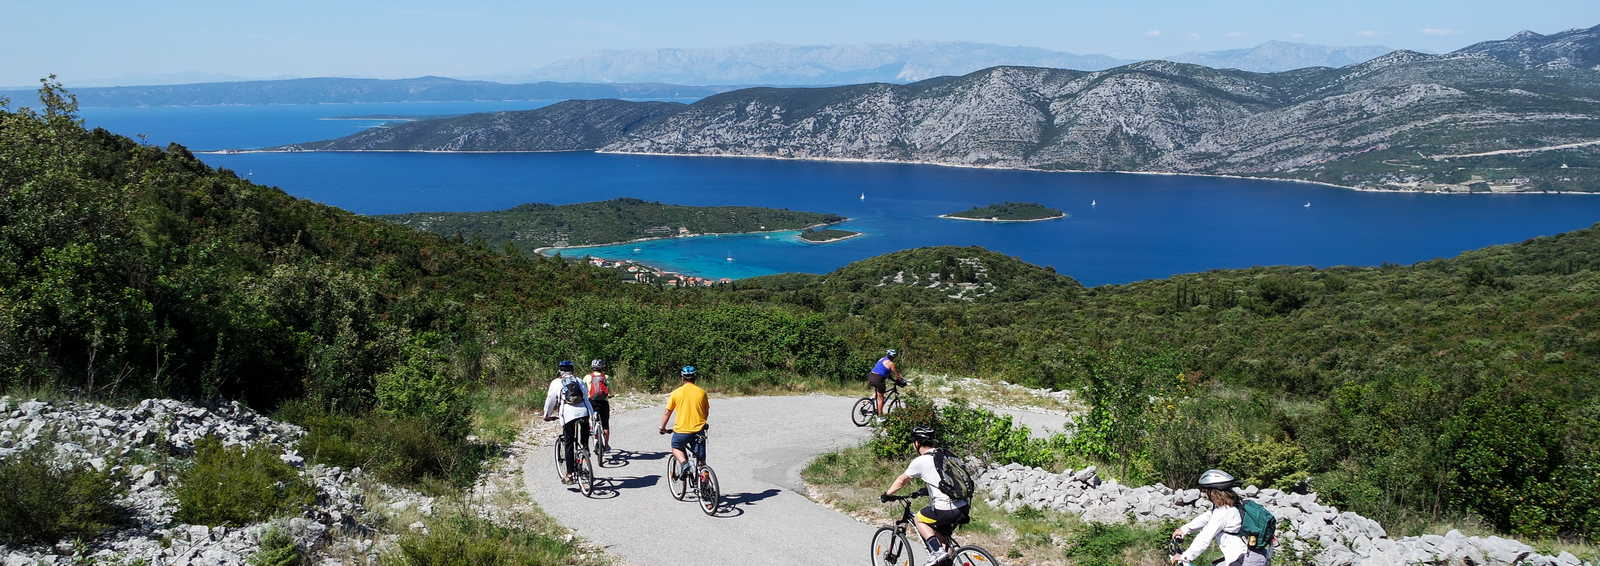 Remarkable Rides: Top 5 Unusual Cycle Tours in Eastern Europe | Exodus